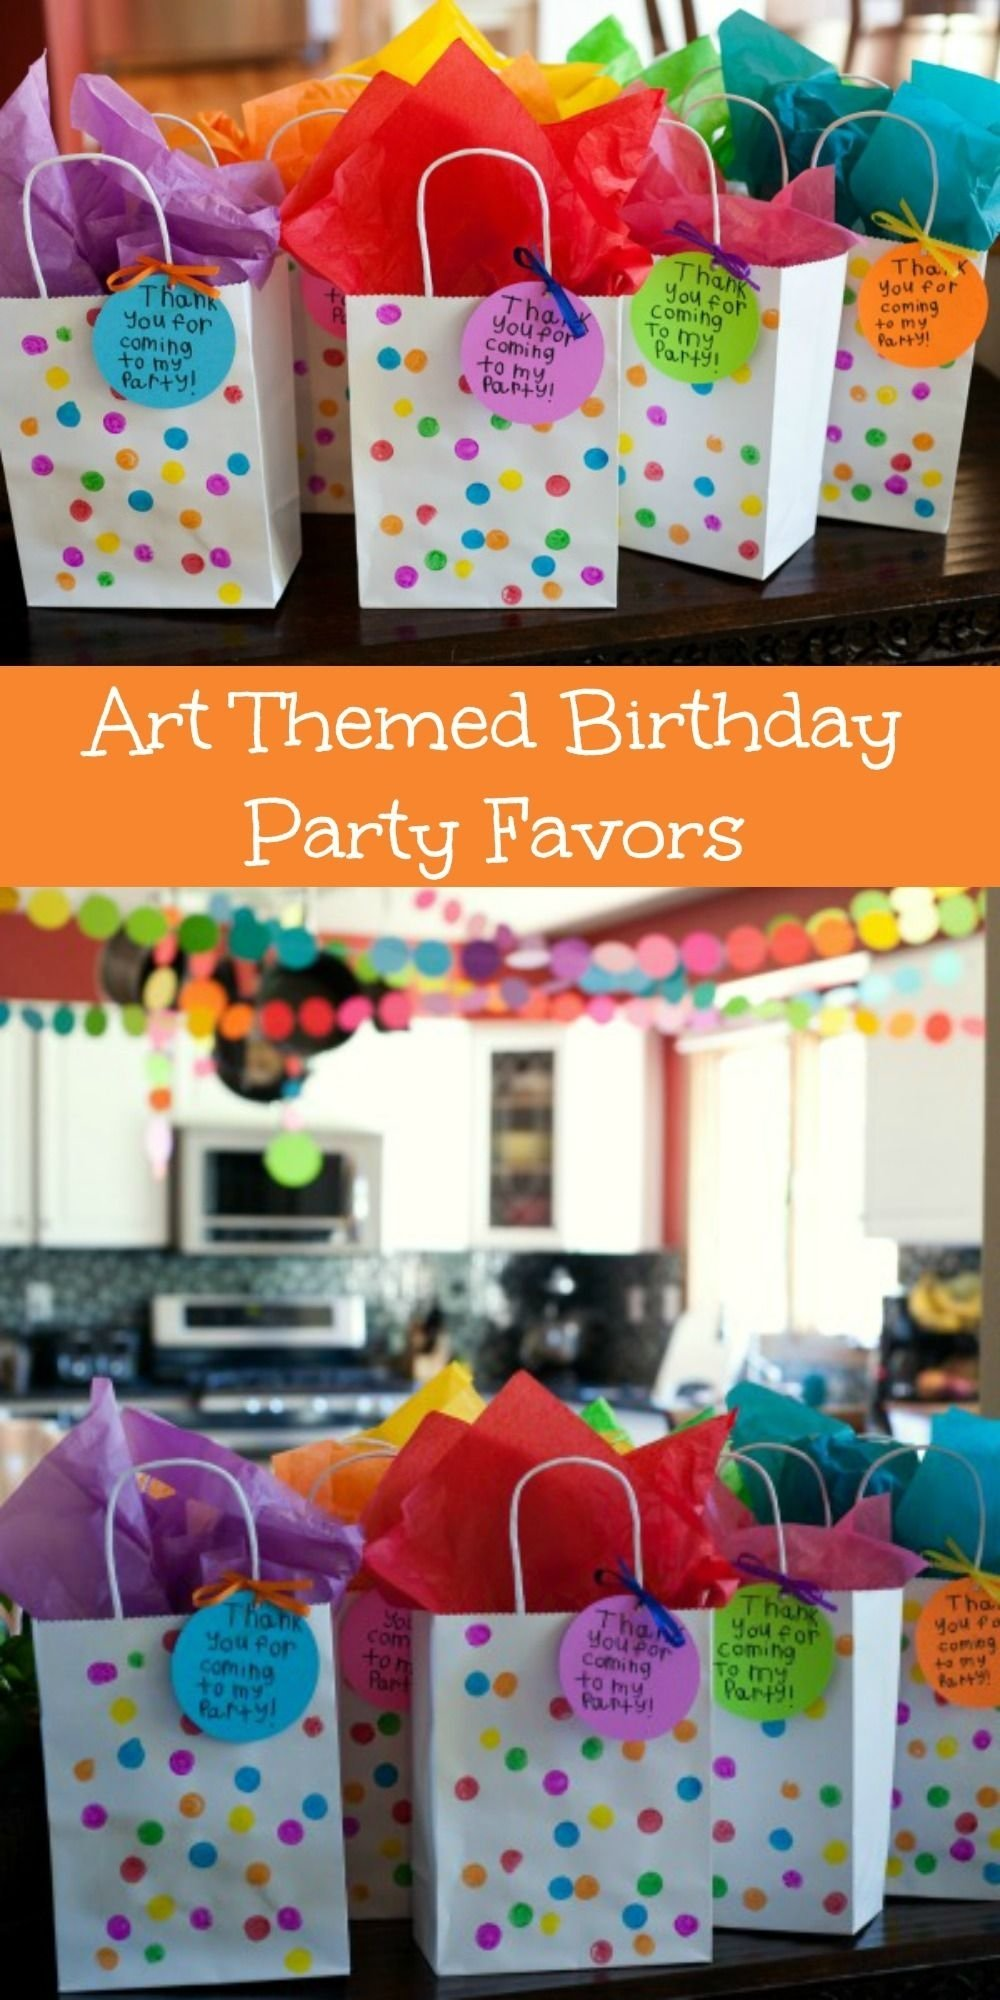 10 Spectacular Goodie Bag Ideas For Kids Birthday Parties fun and usable art themed birthday party favors themed birthday 2020